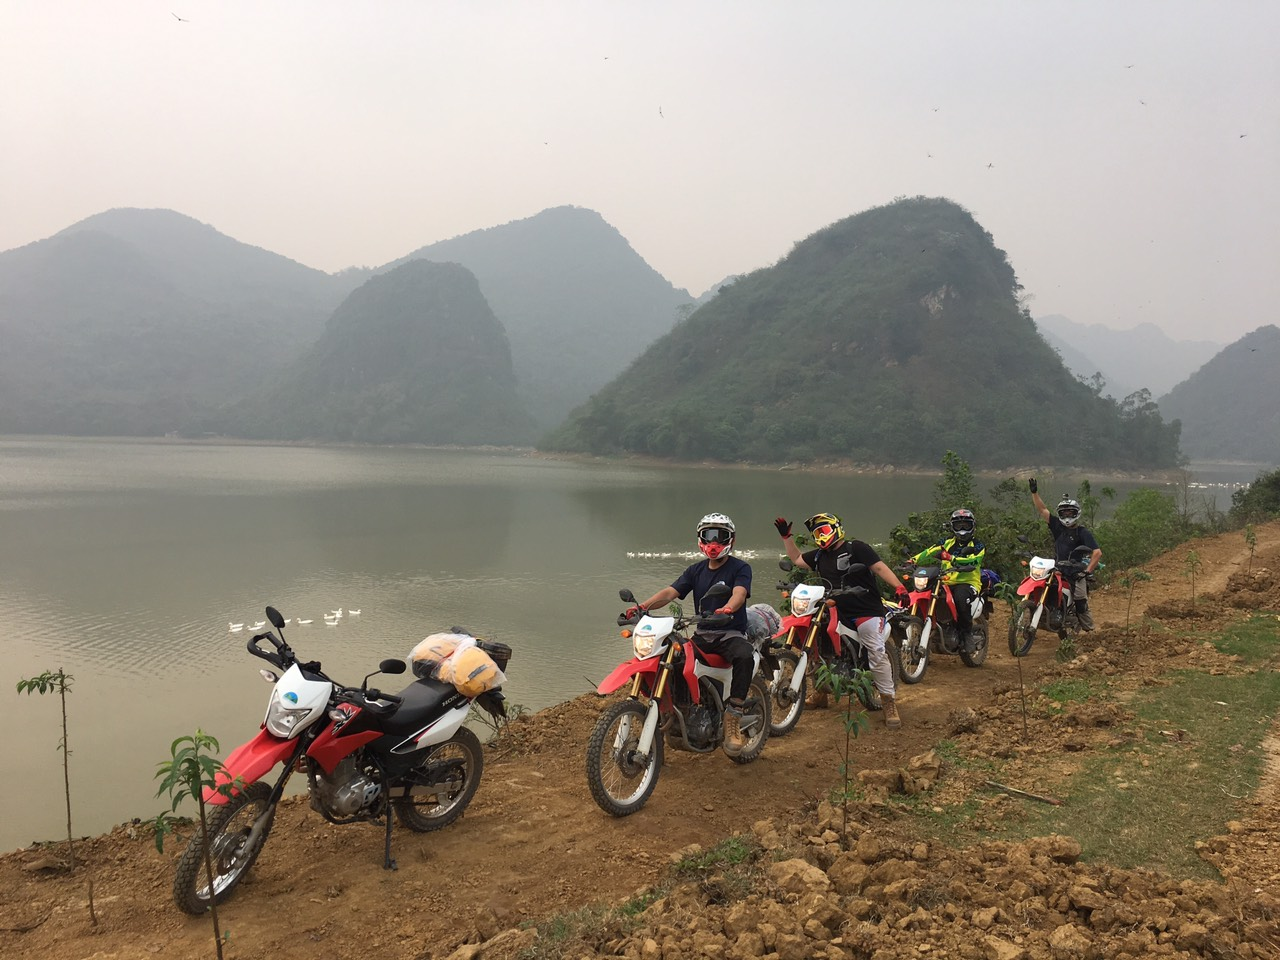 4-Day Northern Vietnam Motorbike from Vu Linh to Ba Be Lake